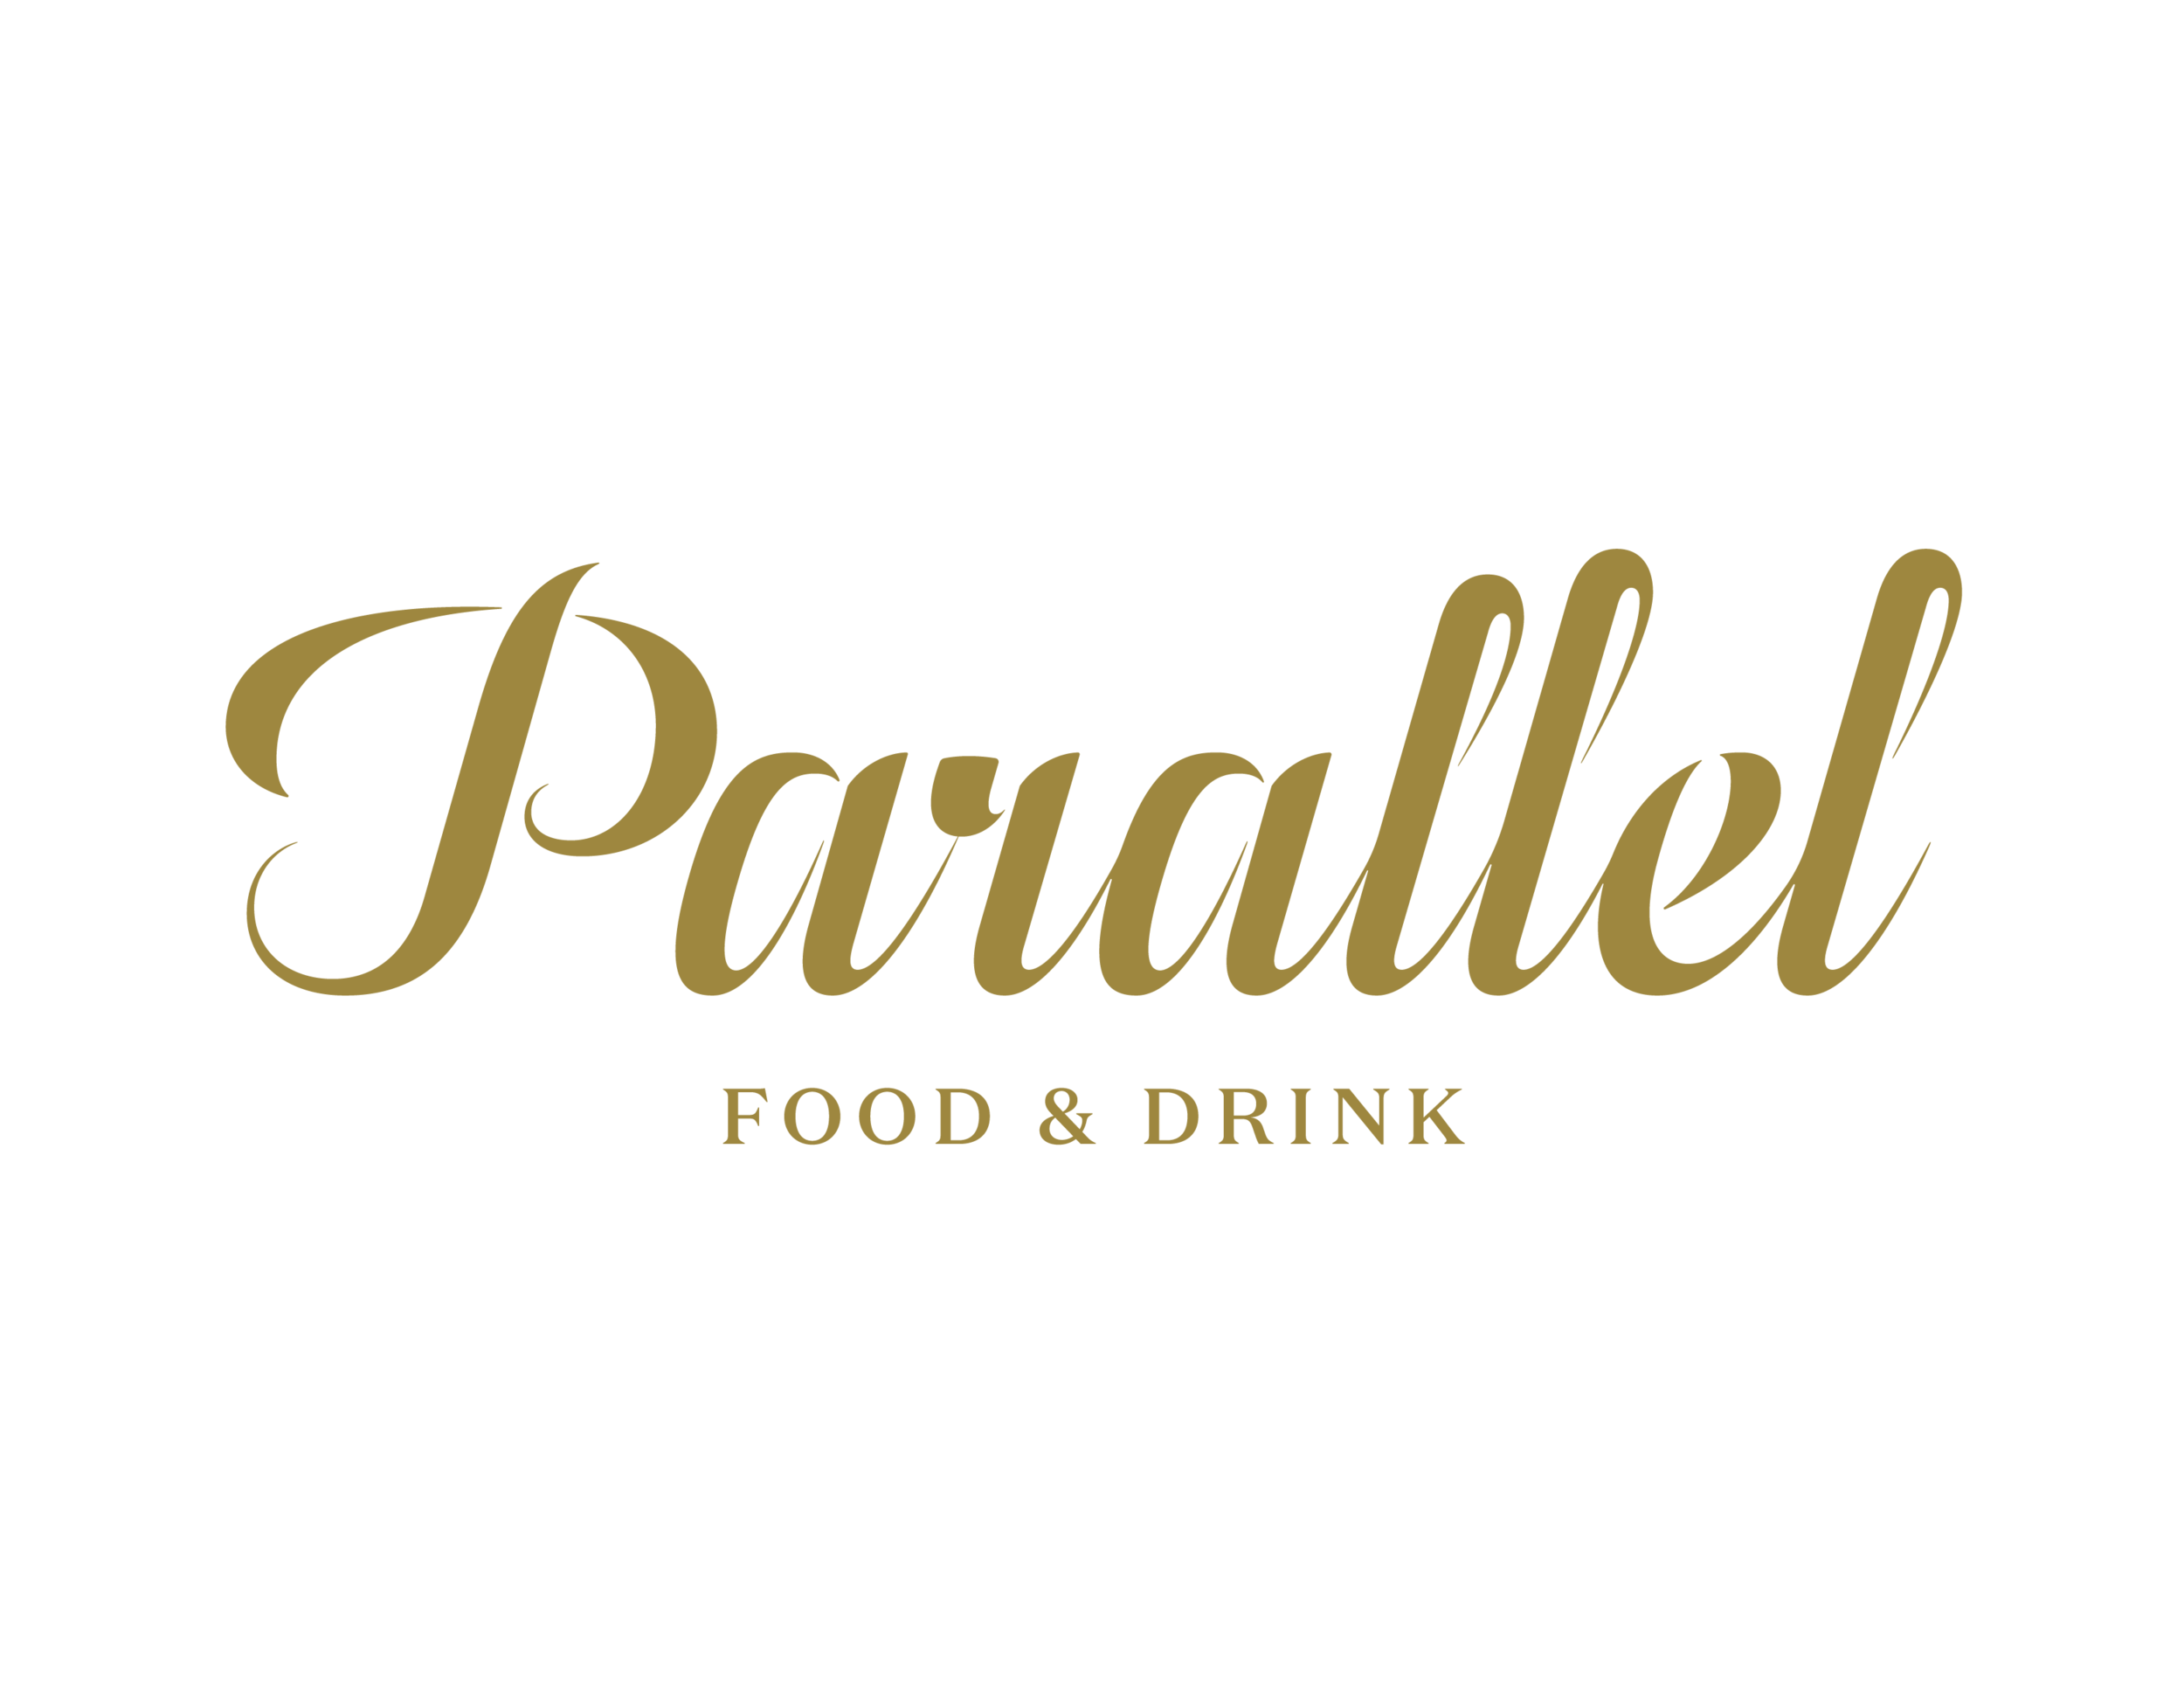 Parallel-logo-gold-01.png